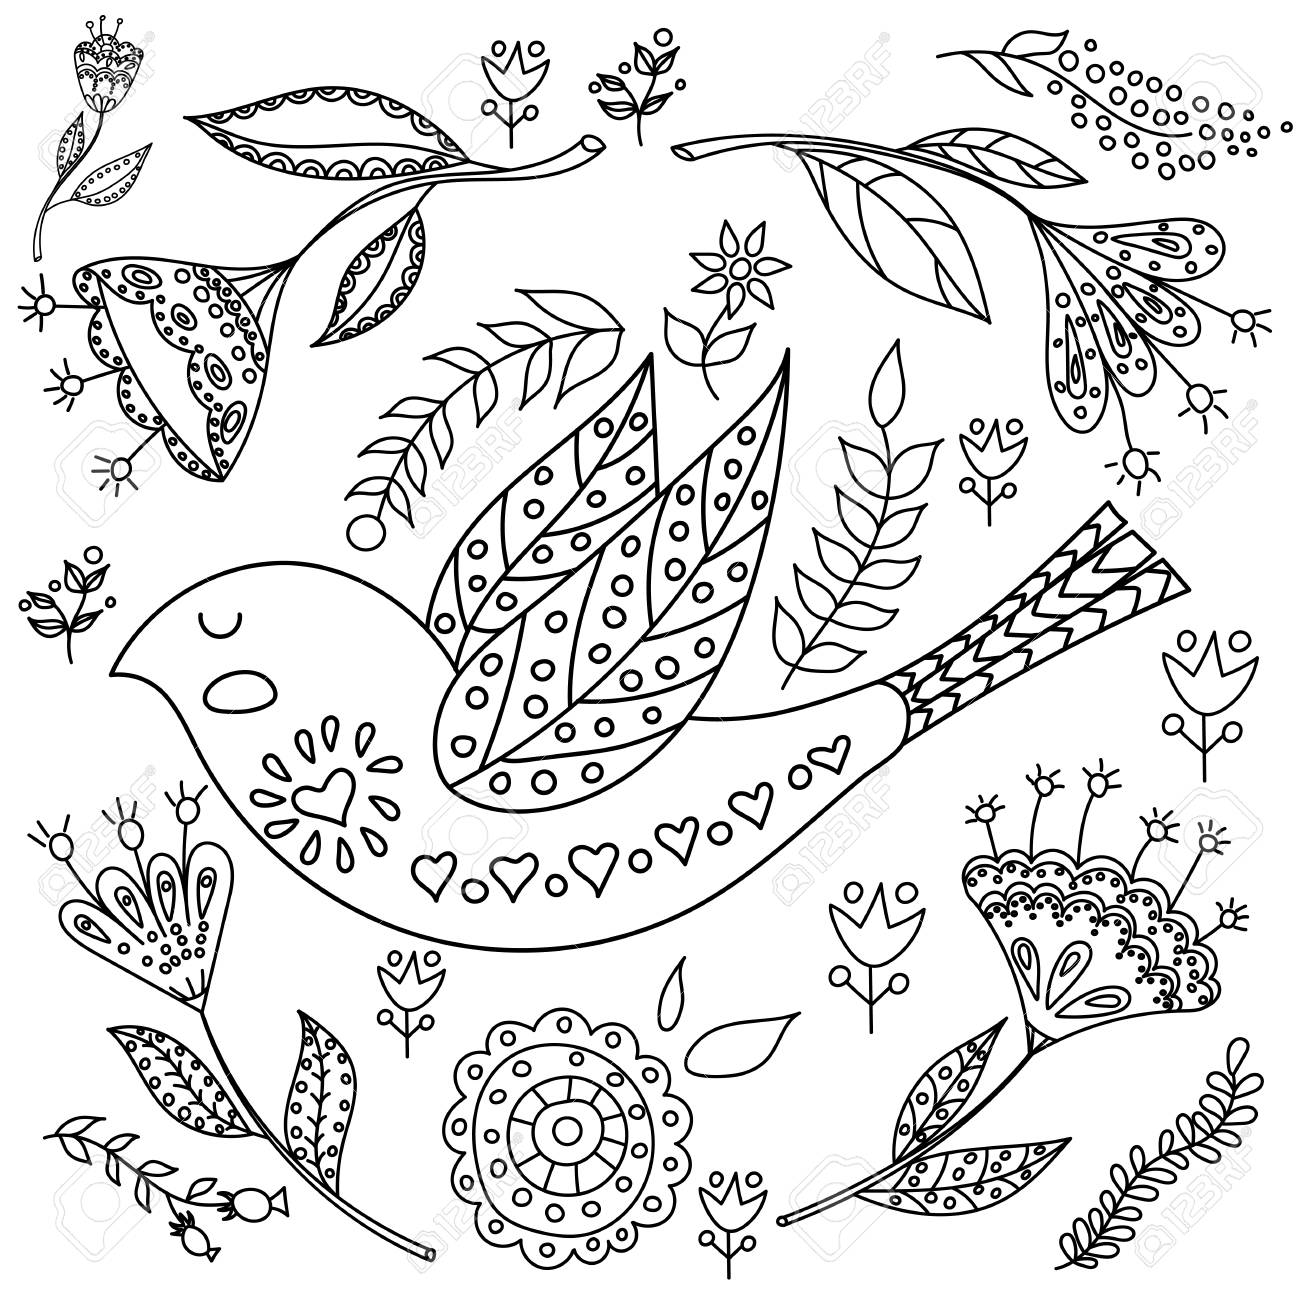 Coloring Book Fol Adults Folk Set Vector Blask And Whit Illustration With Beautiful Birds Flowers